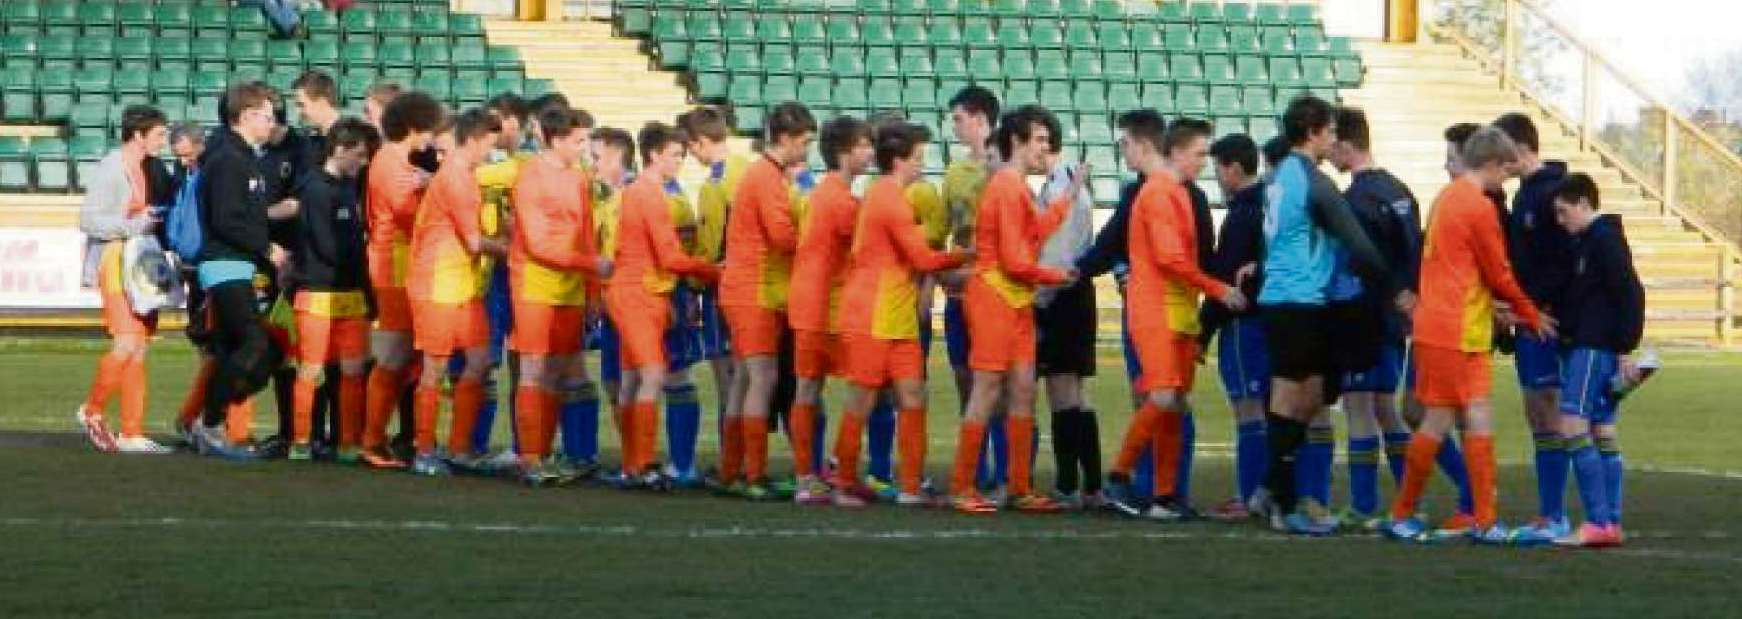 U16s CUP TEAMS: Great rivals Porthkerry Panthers and Llantwit Major before their U16s Cup clash at Jenner Park.